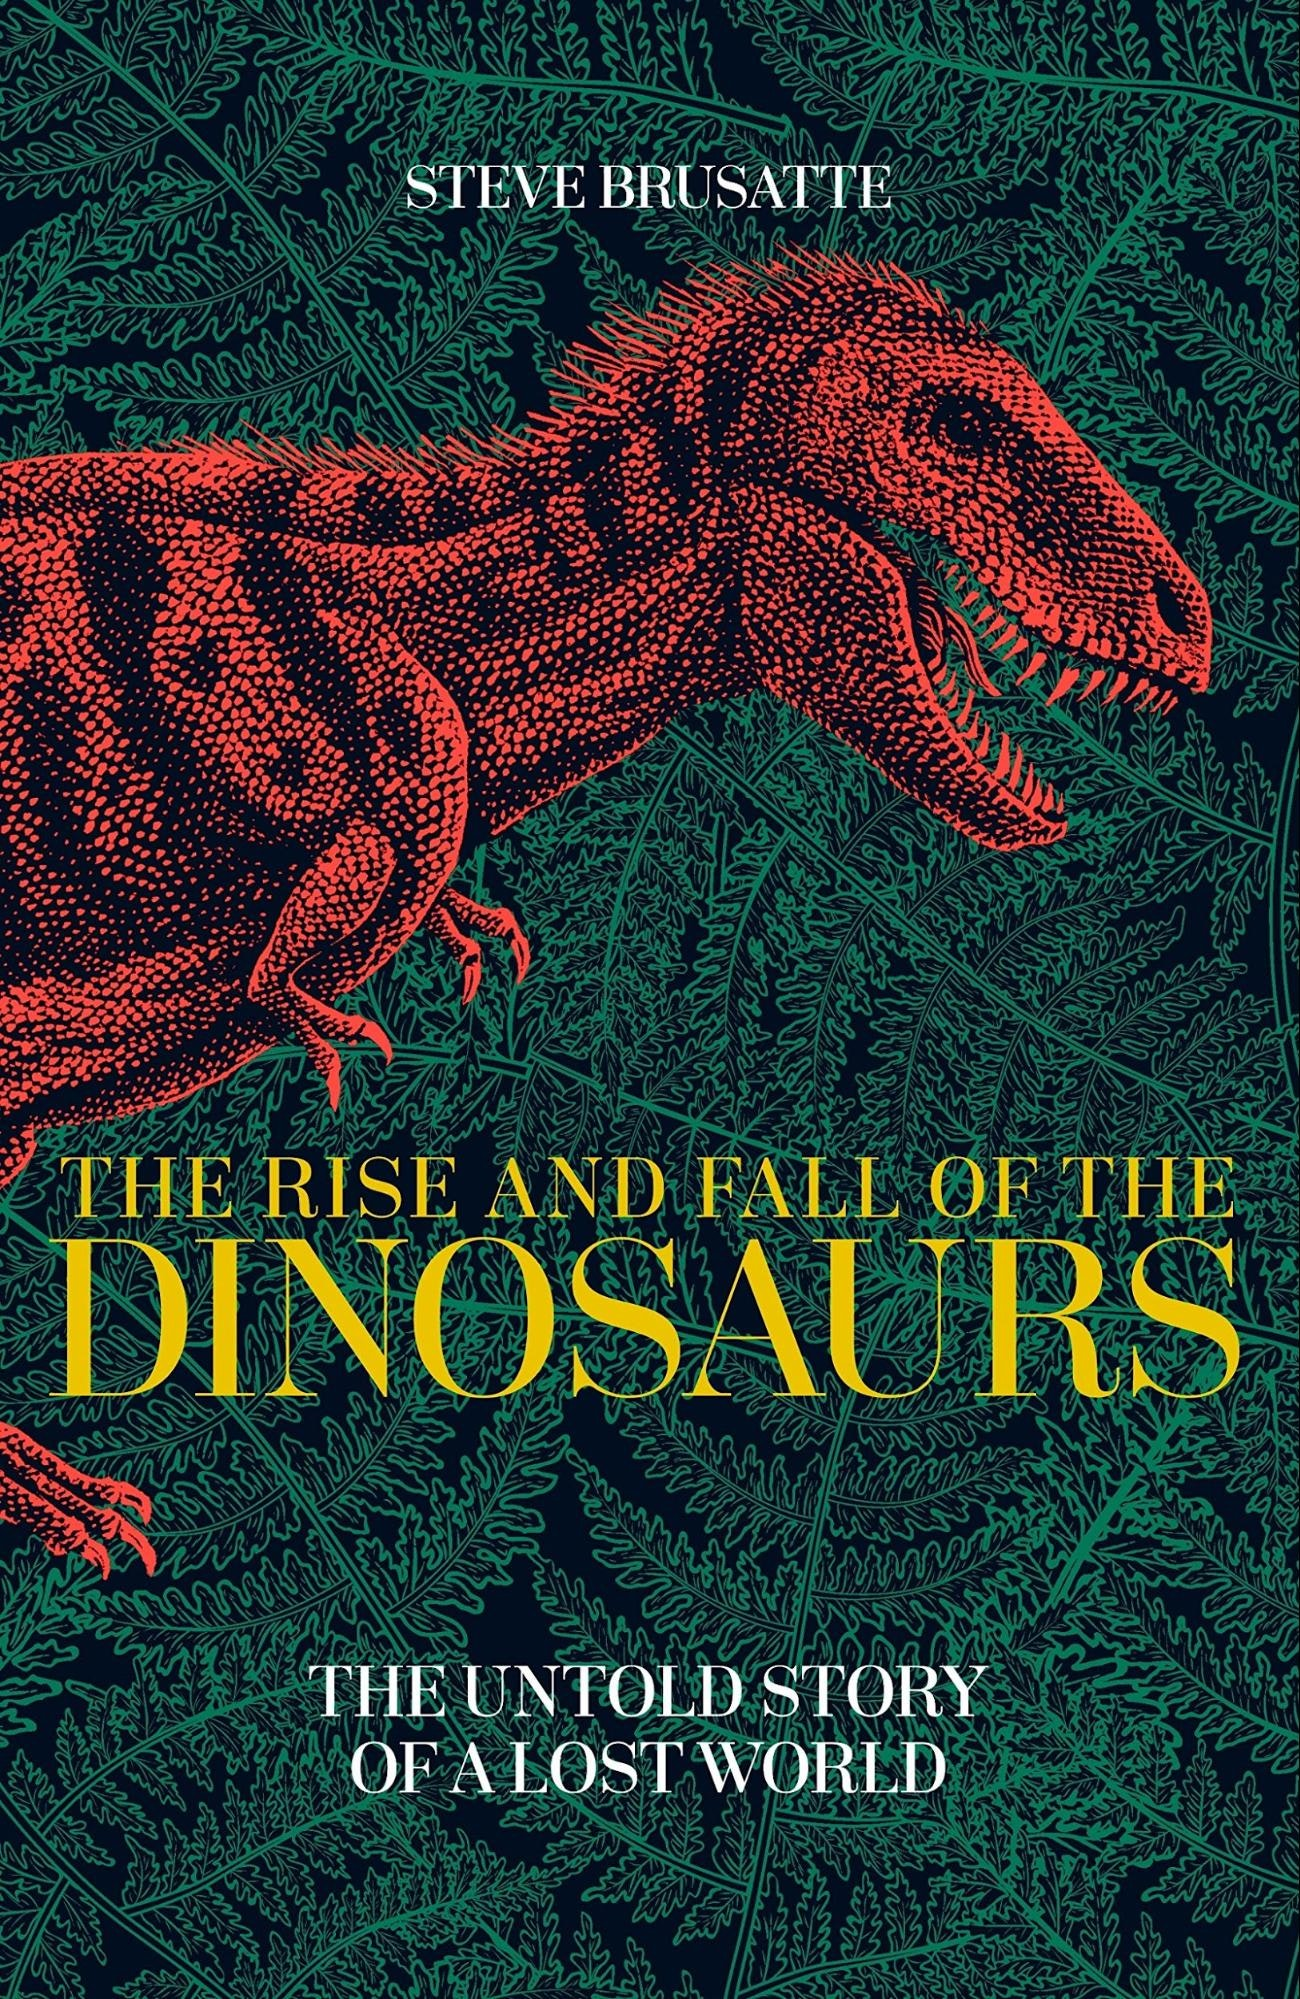 The Rise and Fall of the Dinosaurs – Steve Brusatte